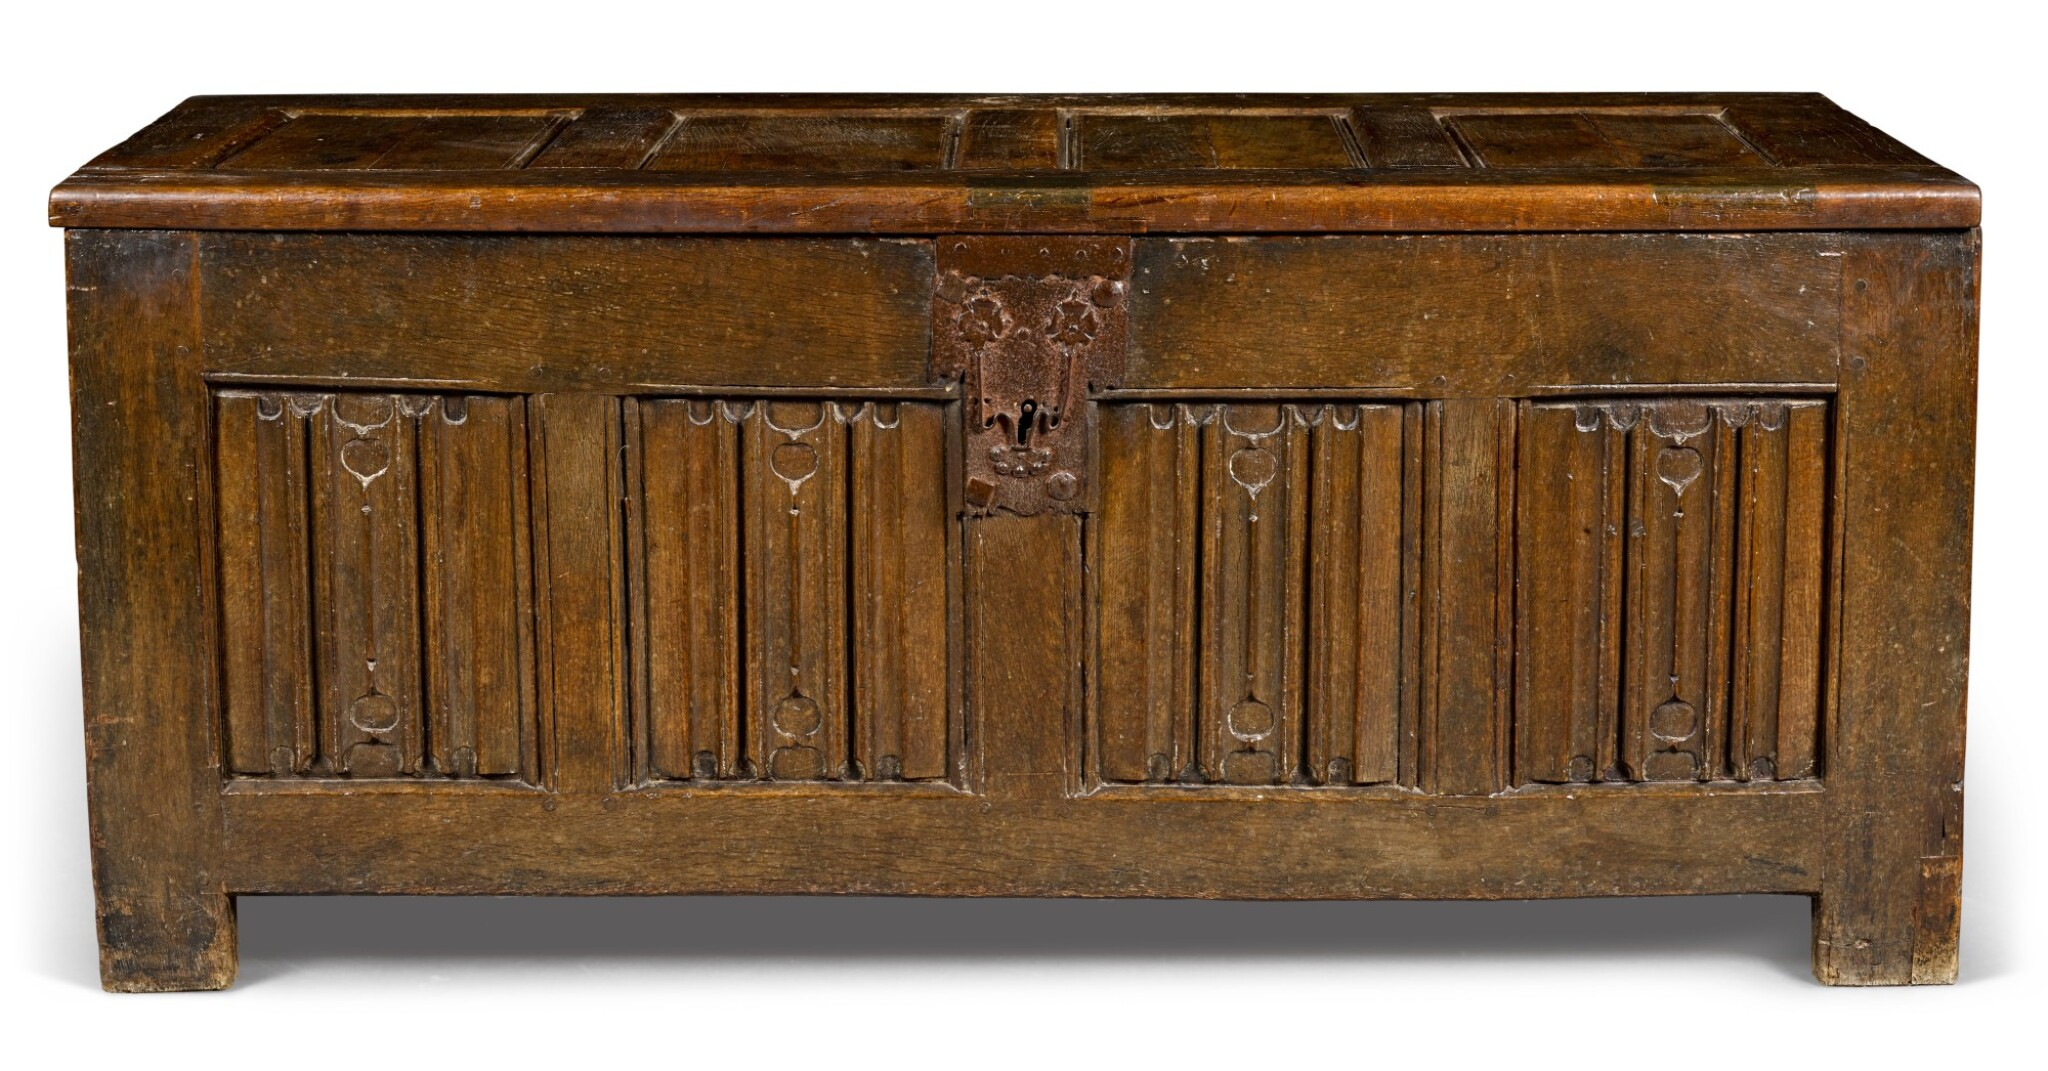 View full screen - View 1 of Lot 21. An oak panelled chest, Low Countries, 16th century.